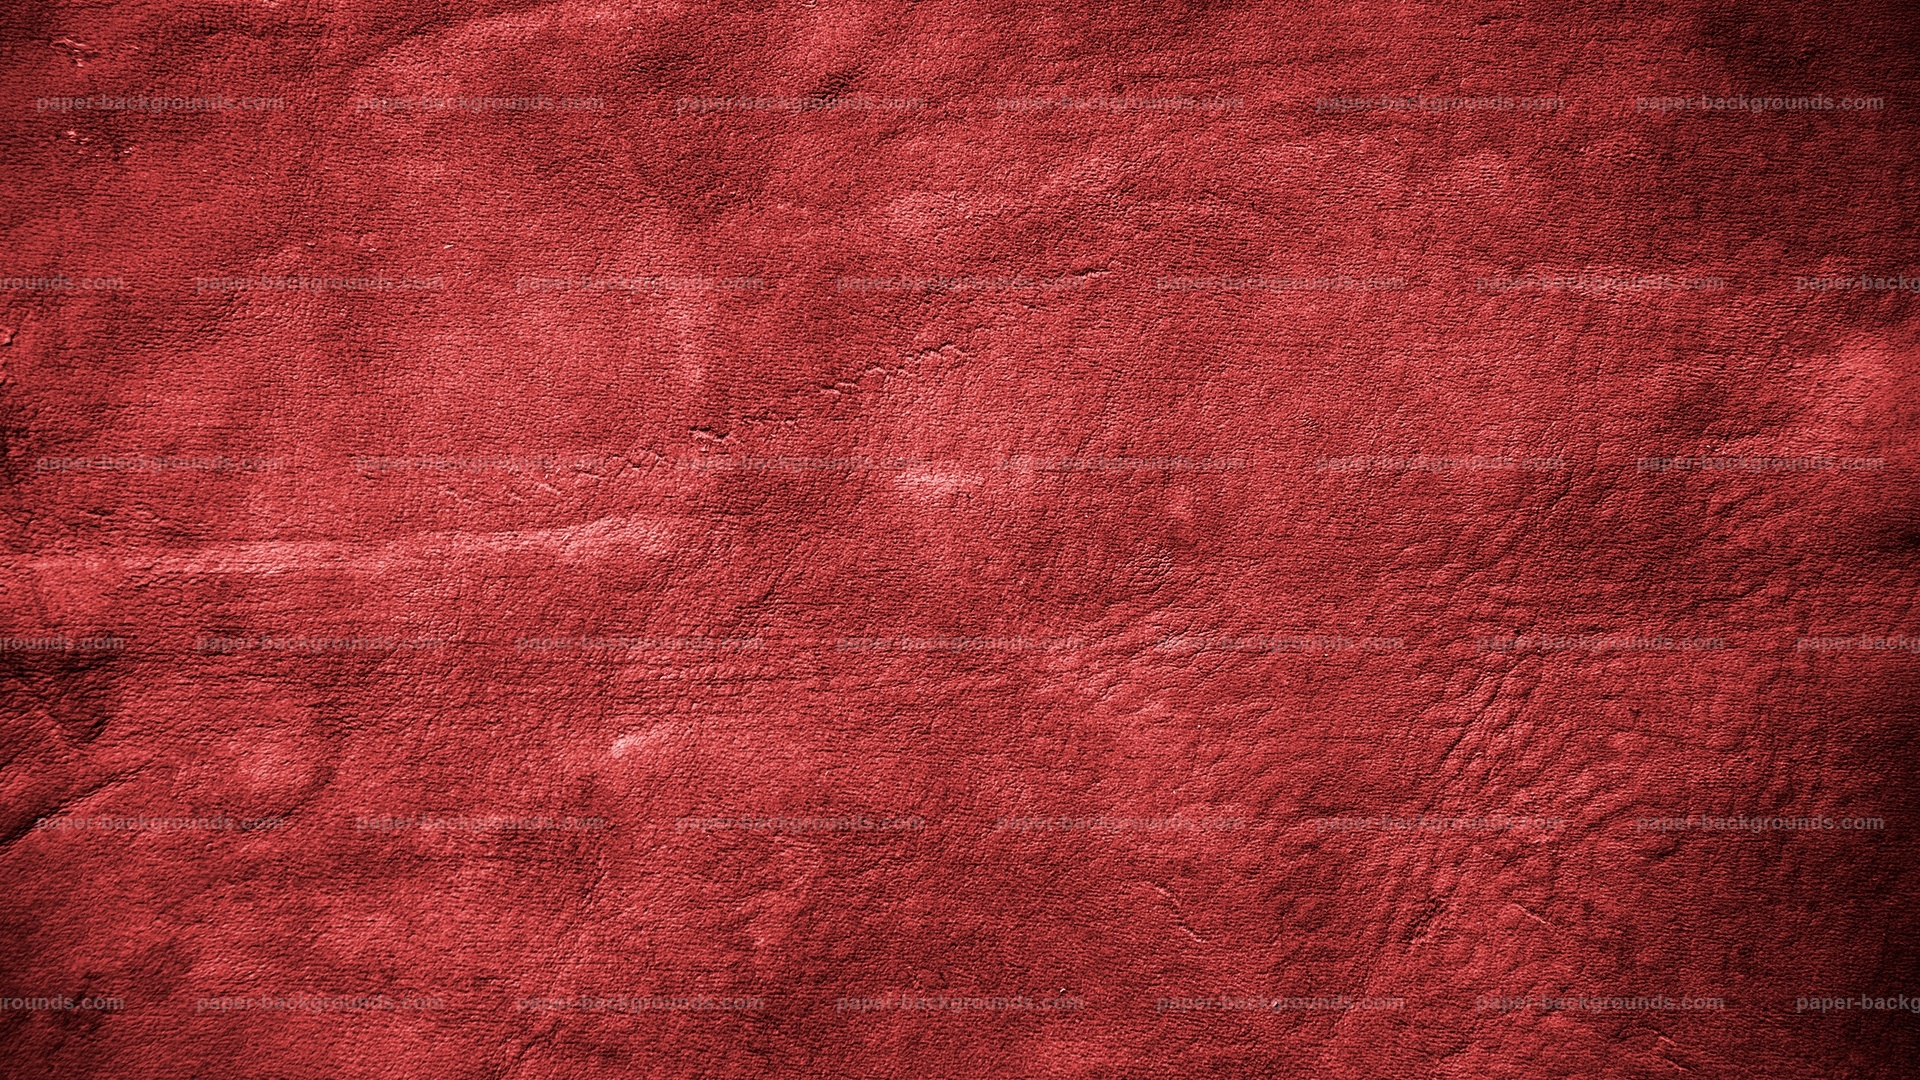 red textured background hd - photo #29